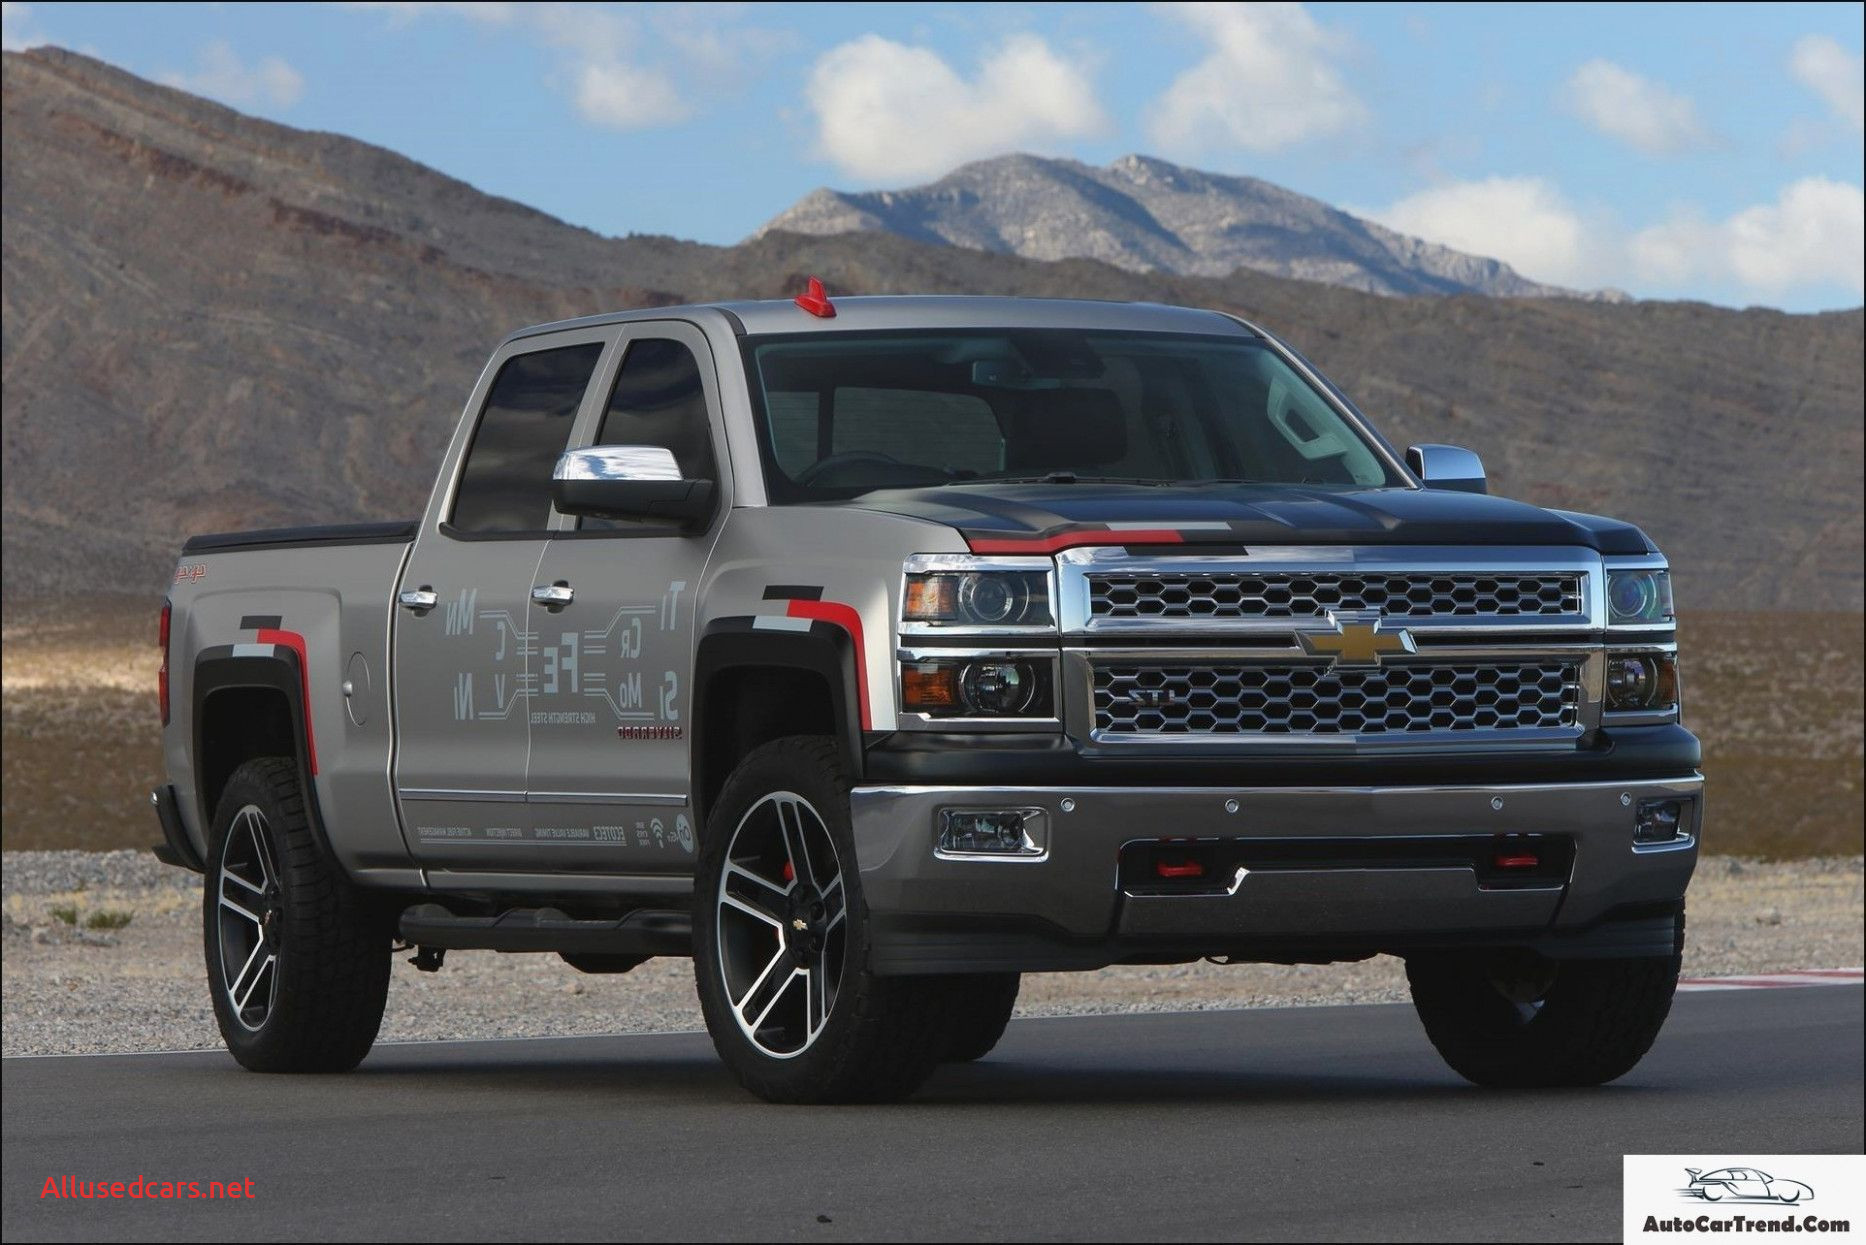 Rothrock Nissan Fresh Chevrolet Avalanche 2020 Redesign and Review